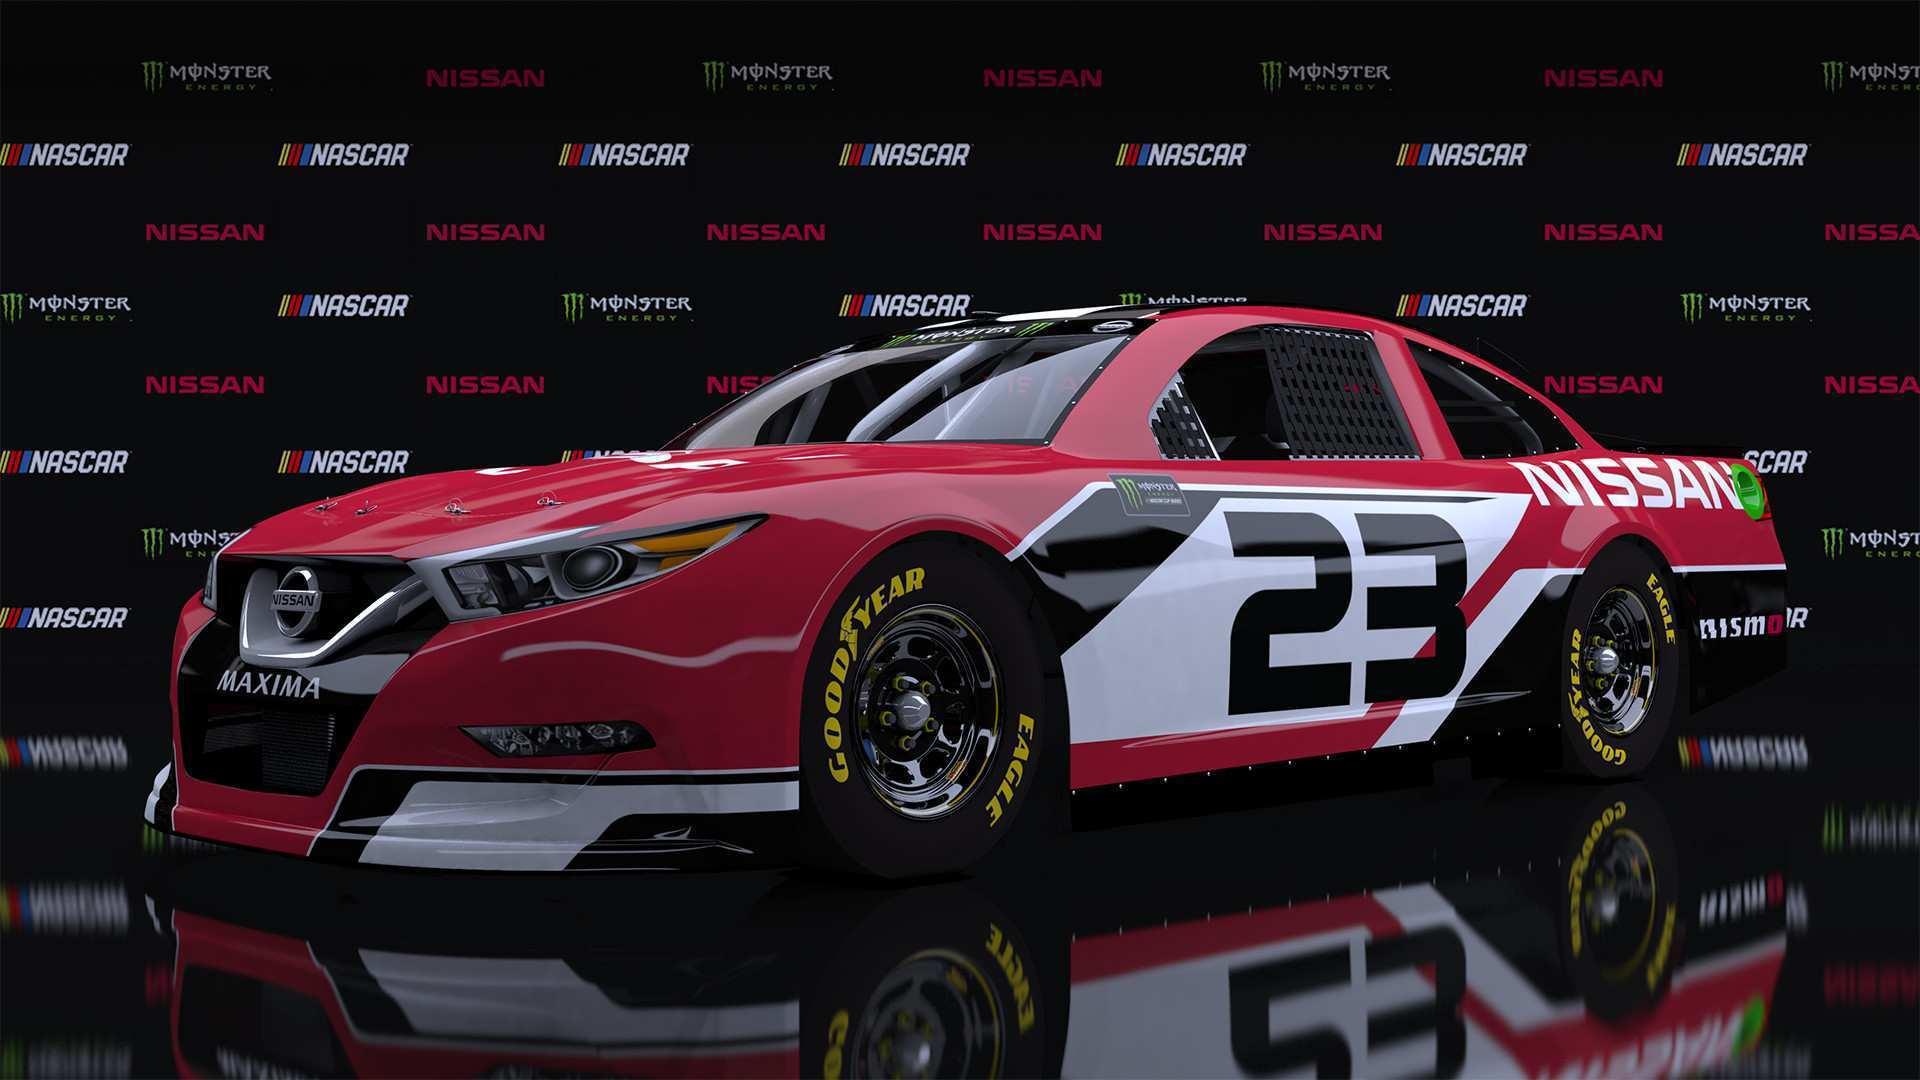 44 A Nissan Nascar 2020 Prices